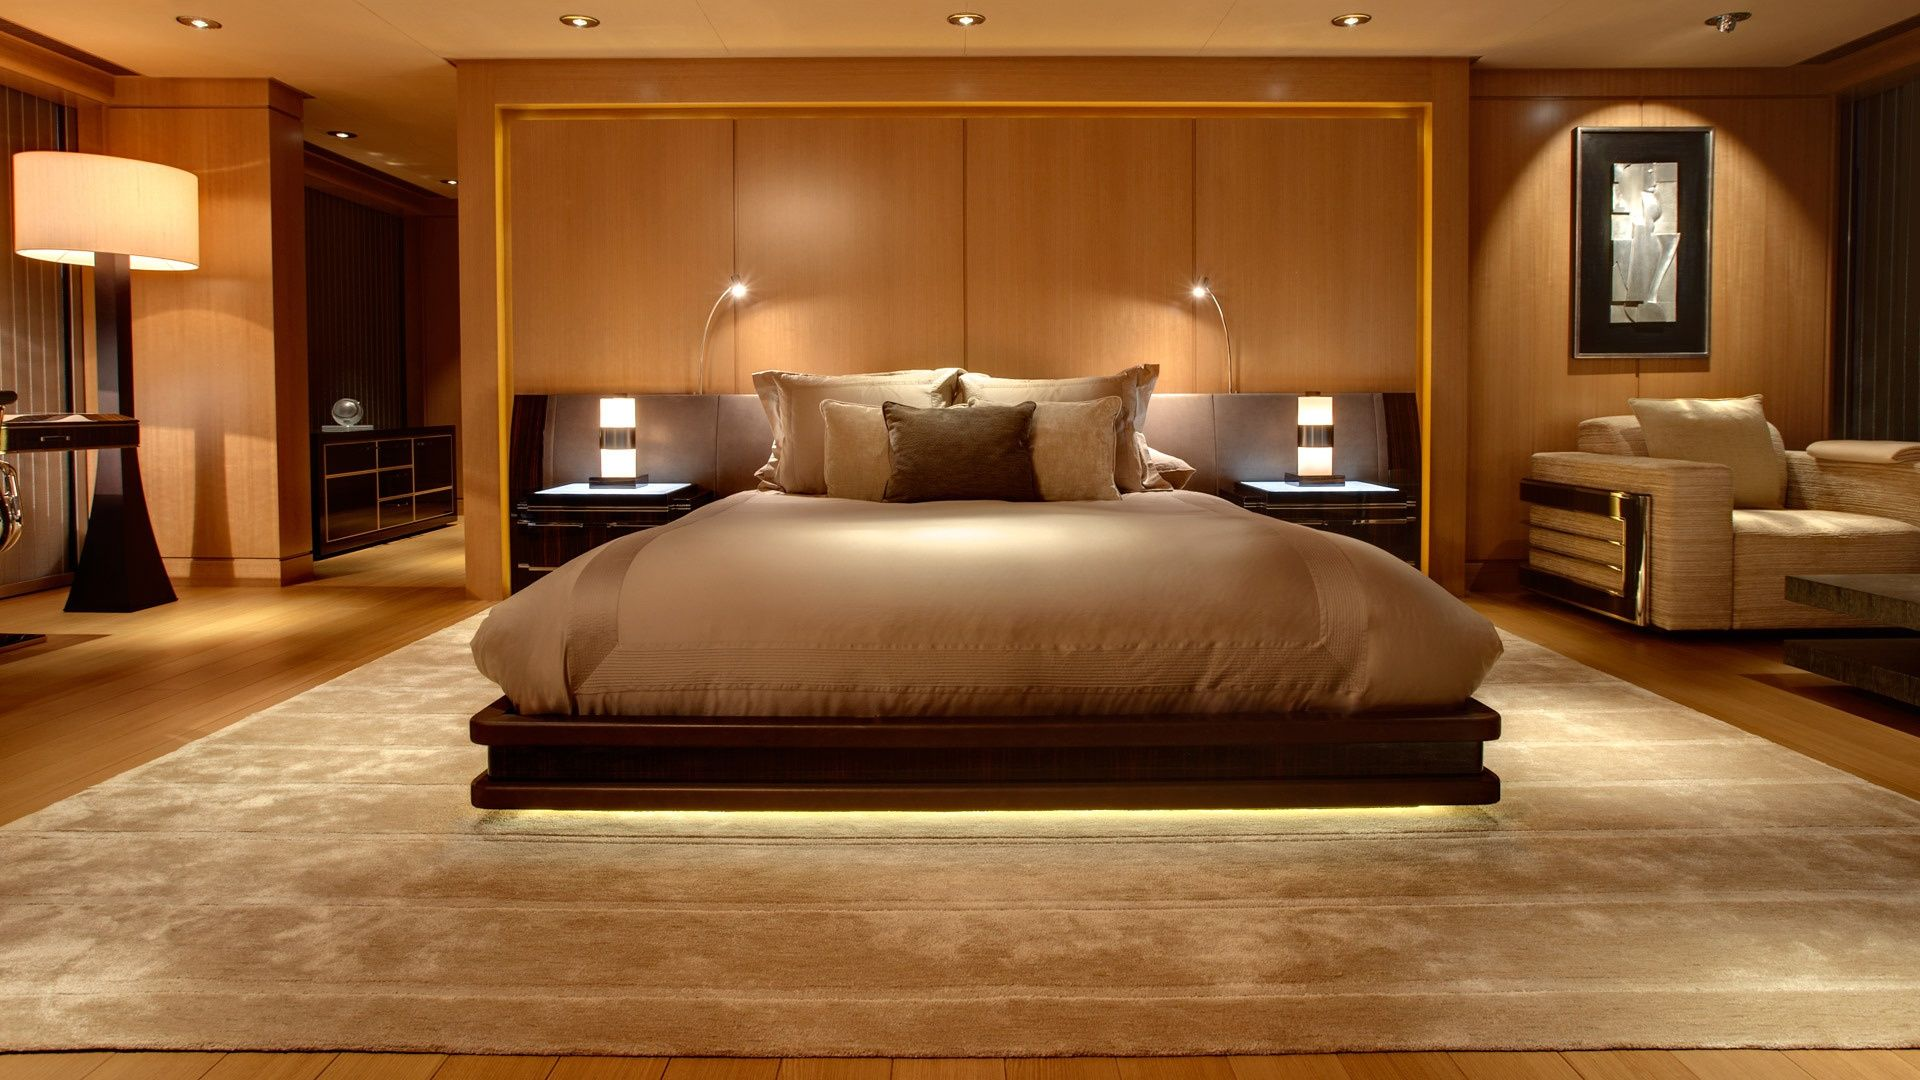 Bedroom hd wallpapers free download bedroom design ideas for Latest wallpaper design for bedroom